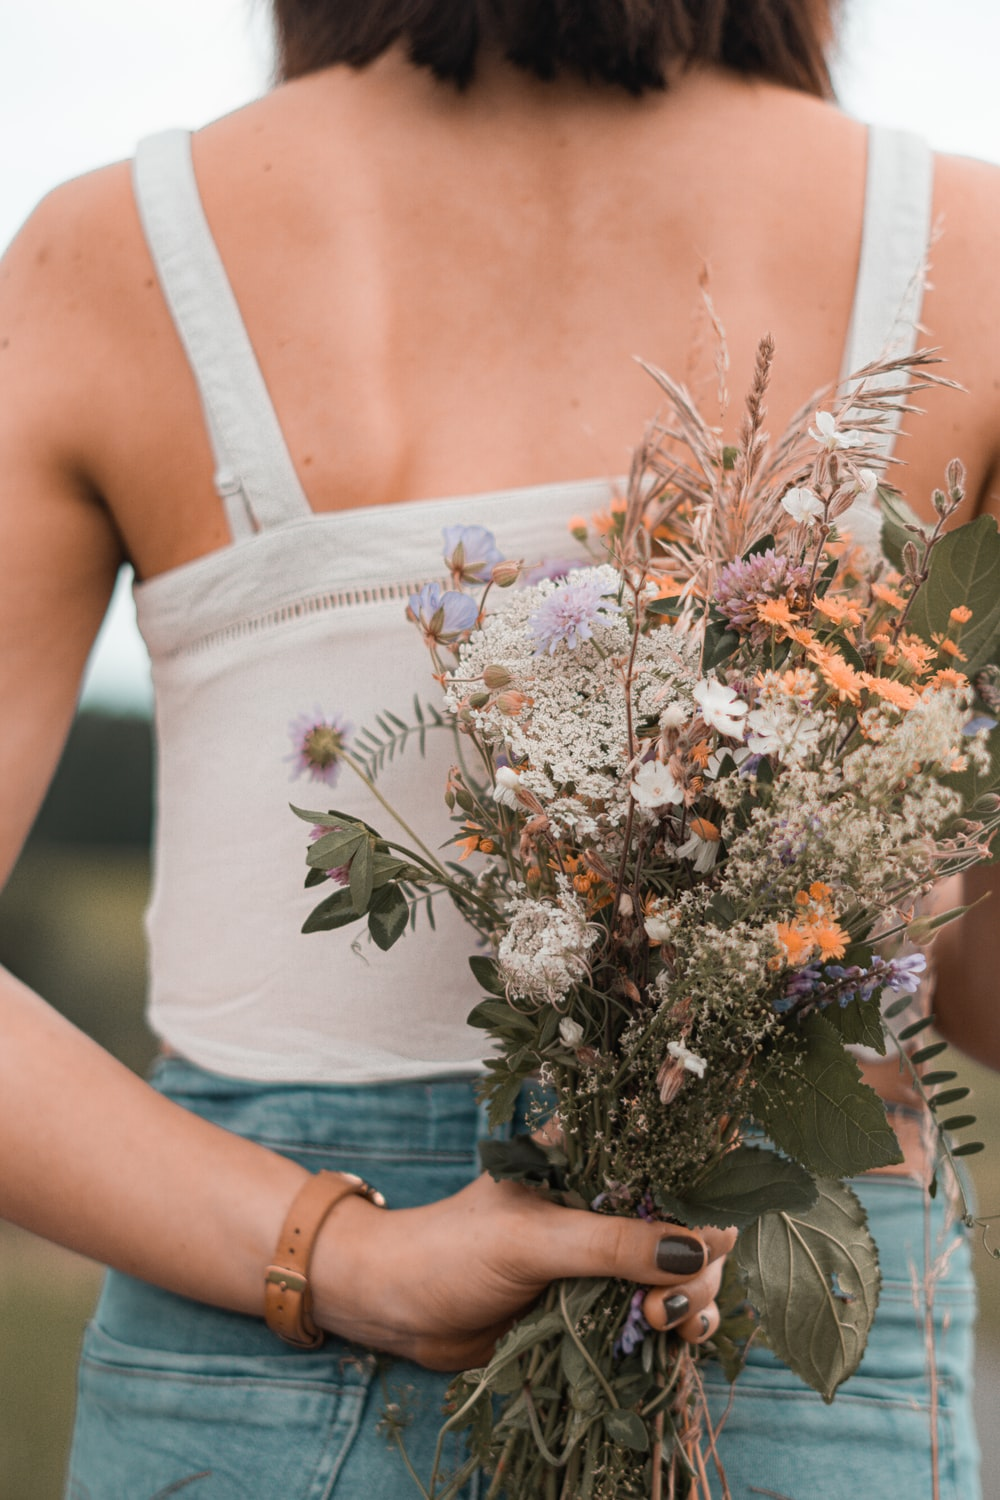 woman in white tank top holding bouquet of flowers